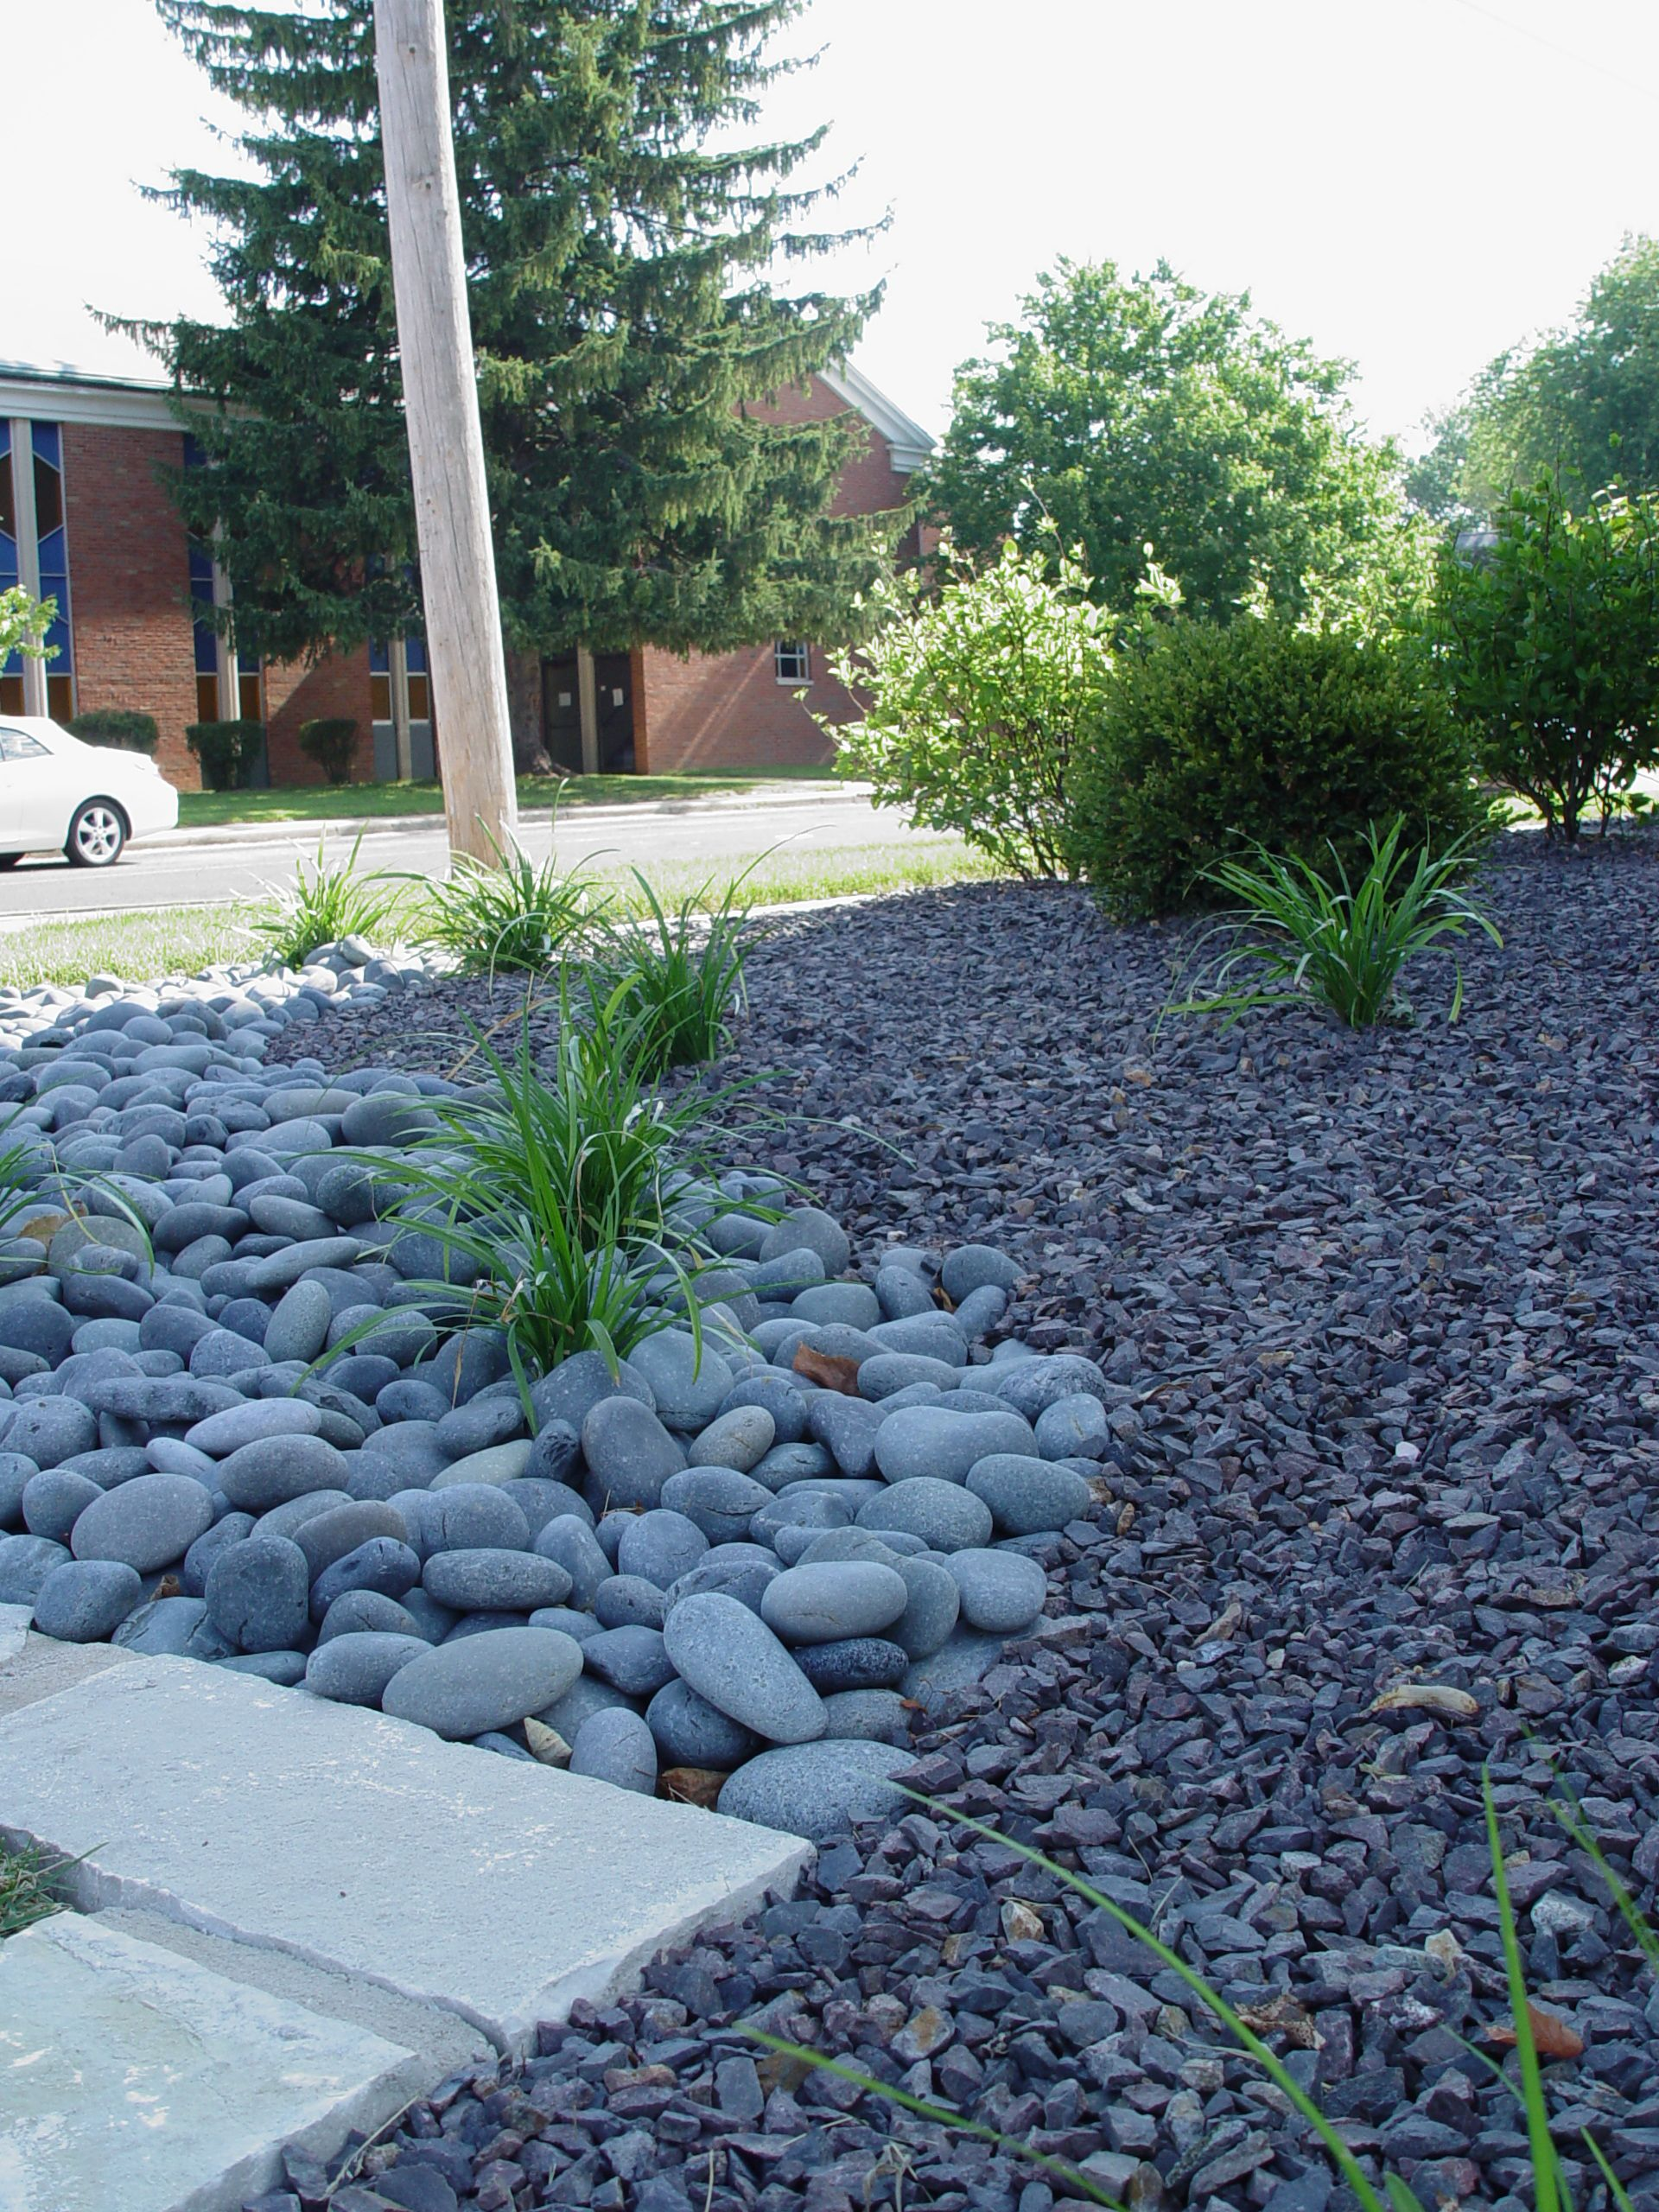 Landscaping With Rocks And Pebbles : Trap rock mexican beach pebbles nice combination of the two stones